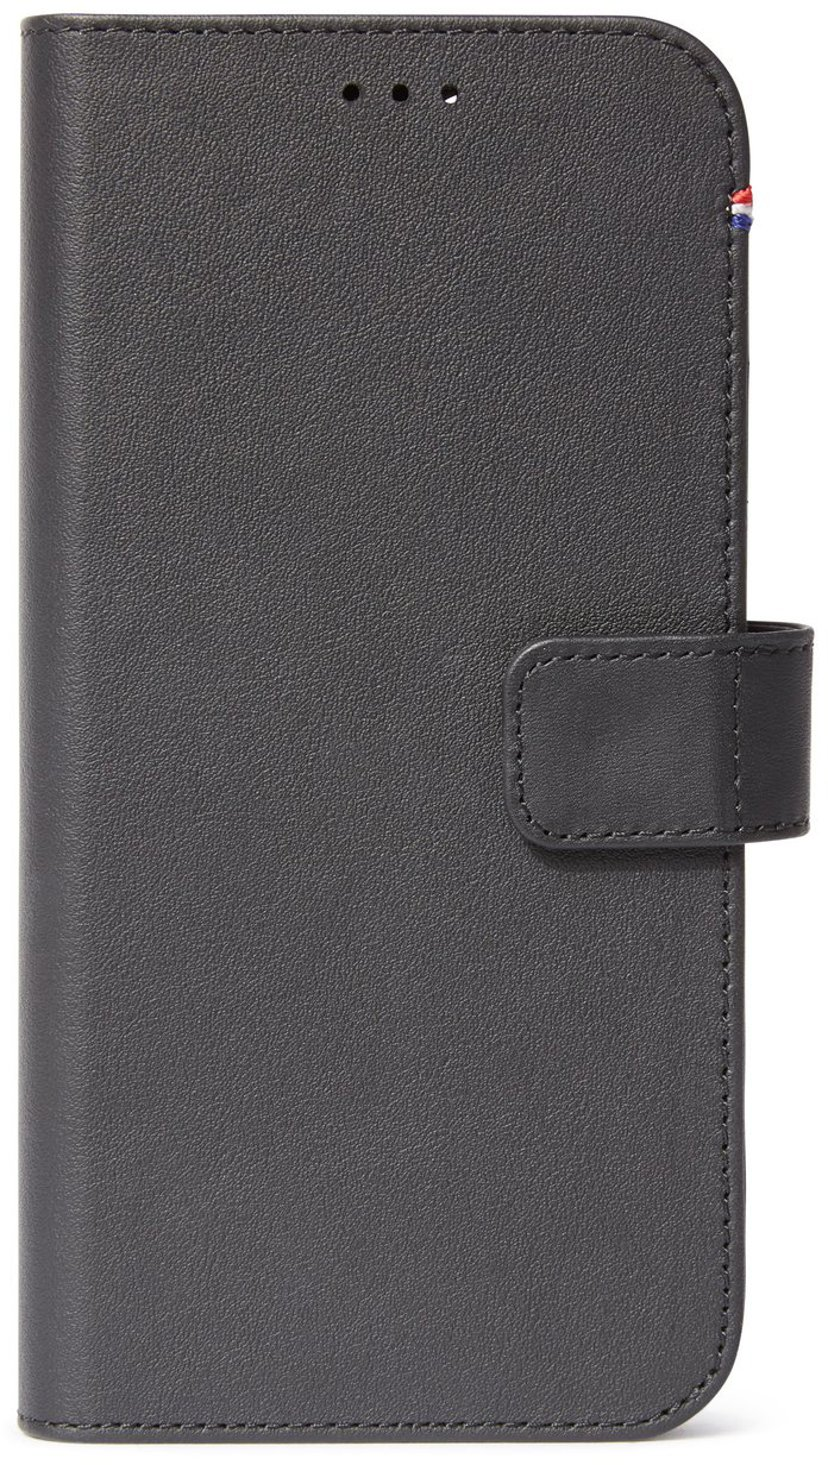 Decoded Leather Wallet iPhone 12, iPhone 12 Pro Sort